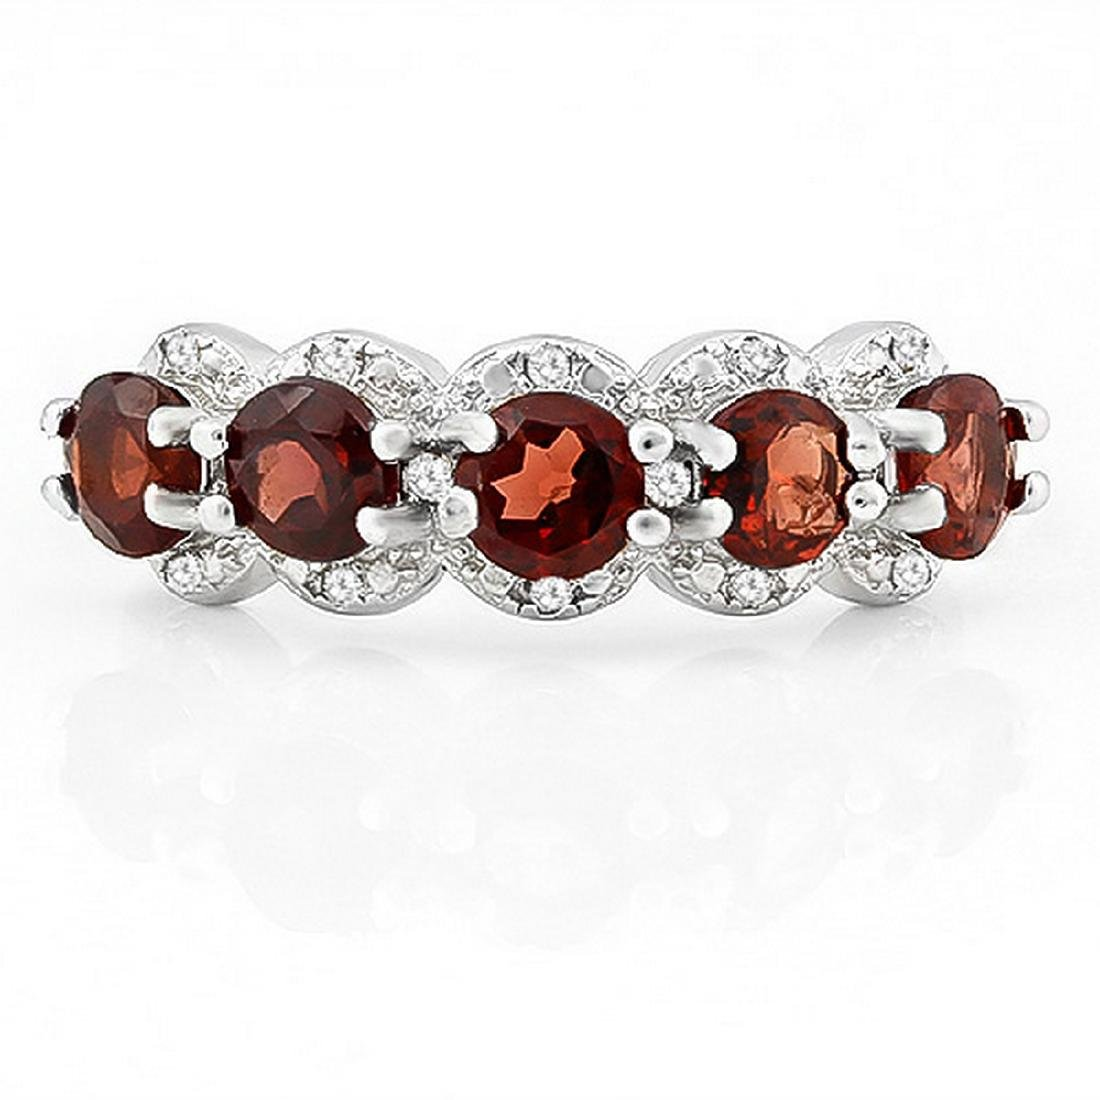 Garnet and Diamond Stacking Ring in Sterling Silver - 2